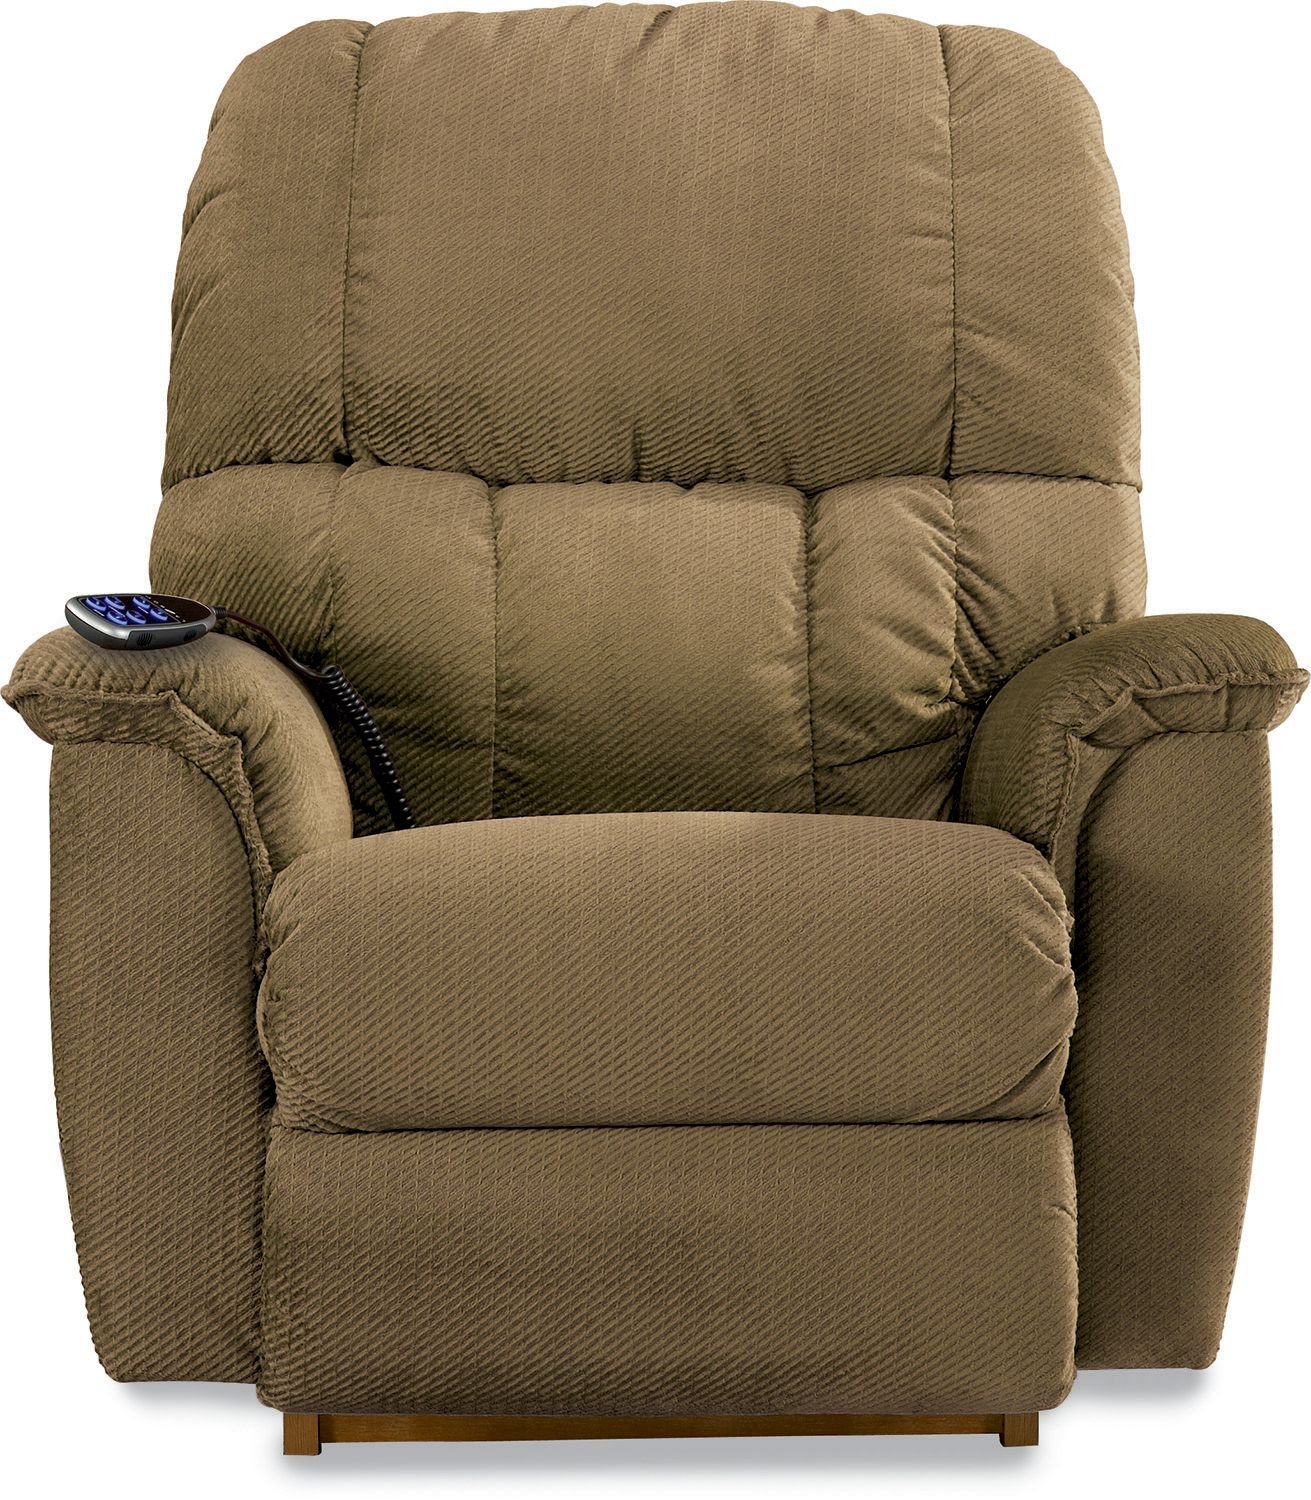 La-Z-Boy Power Imperial Recliner- Walnut